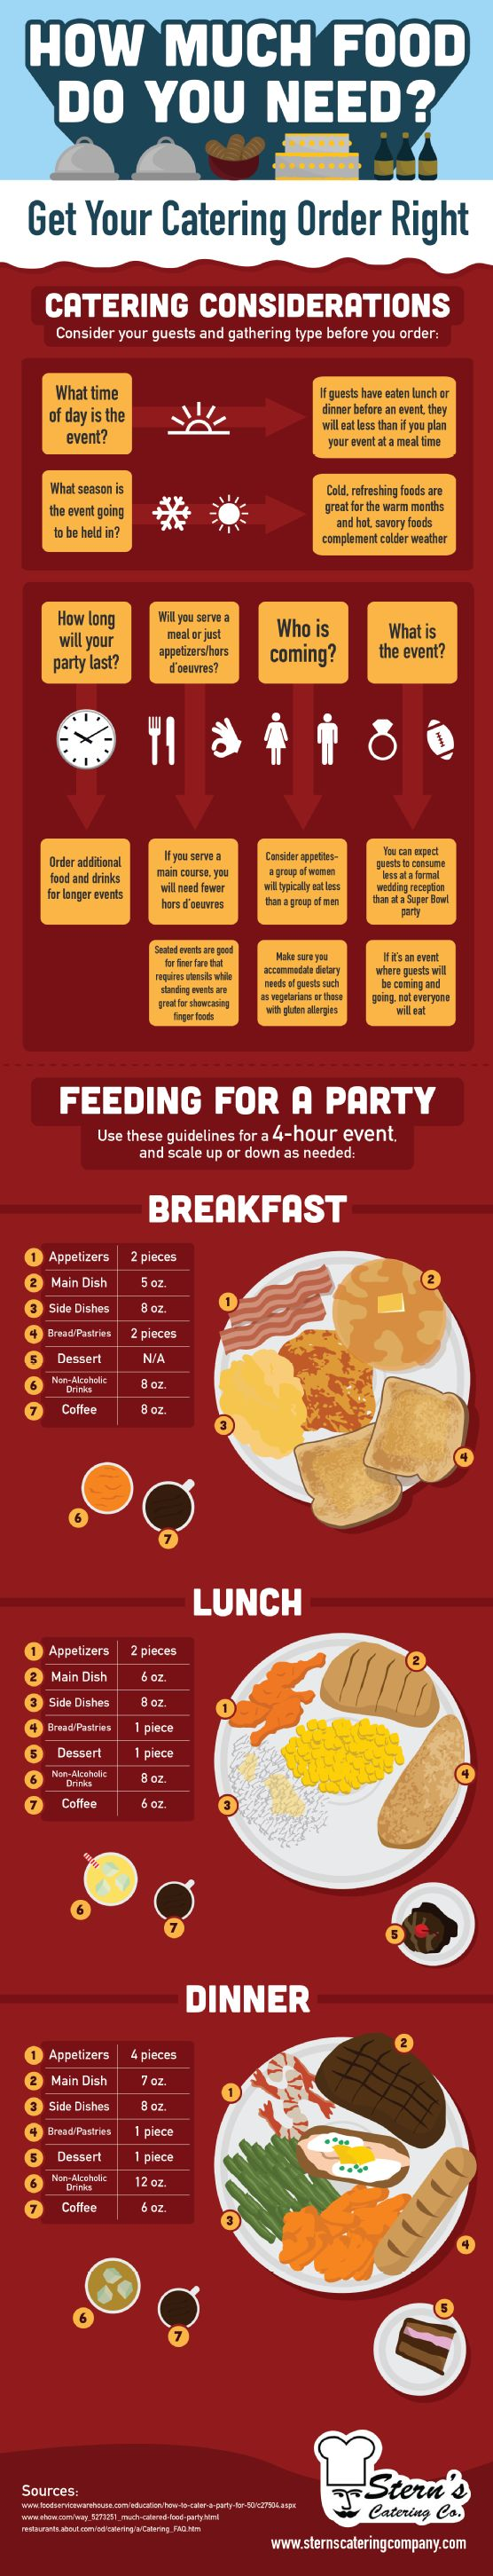 This graph touches base on things to consider when having an event catered. Most important that you keep your guests happy if you plan on being the Hostess/Host of the year!